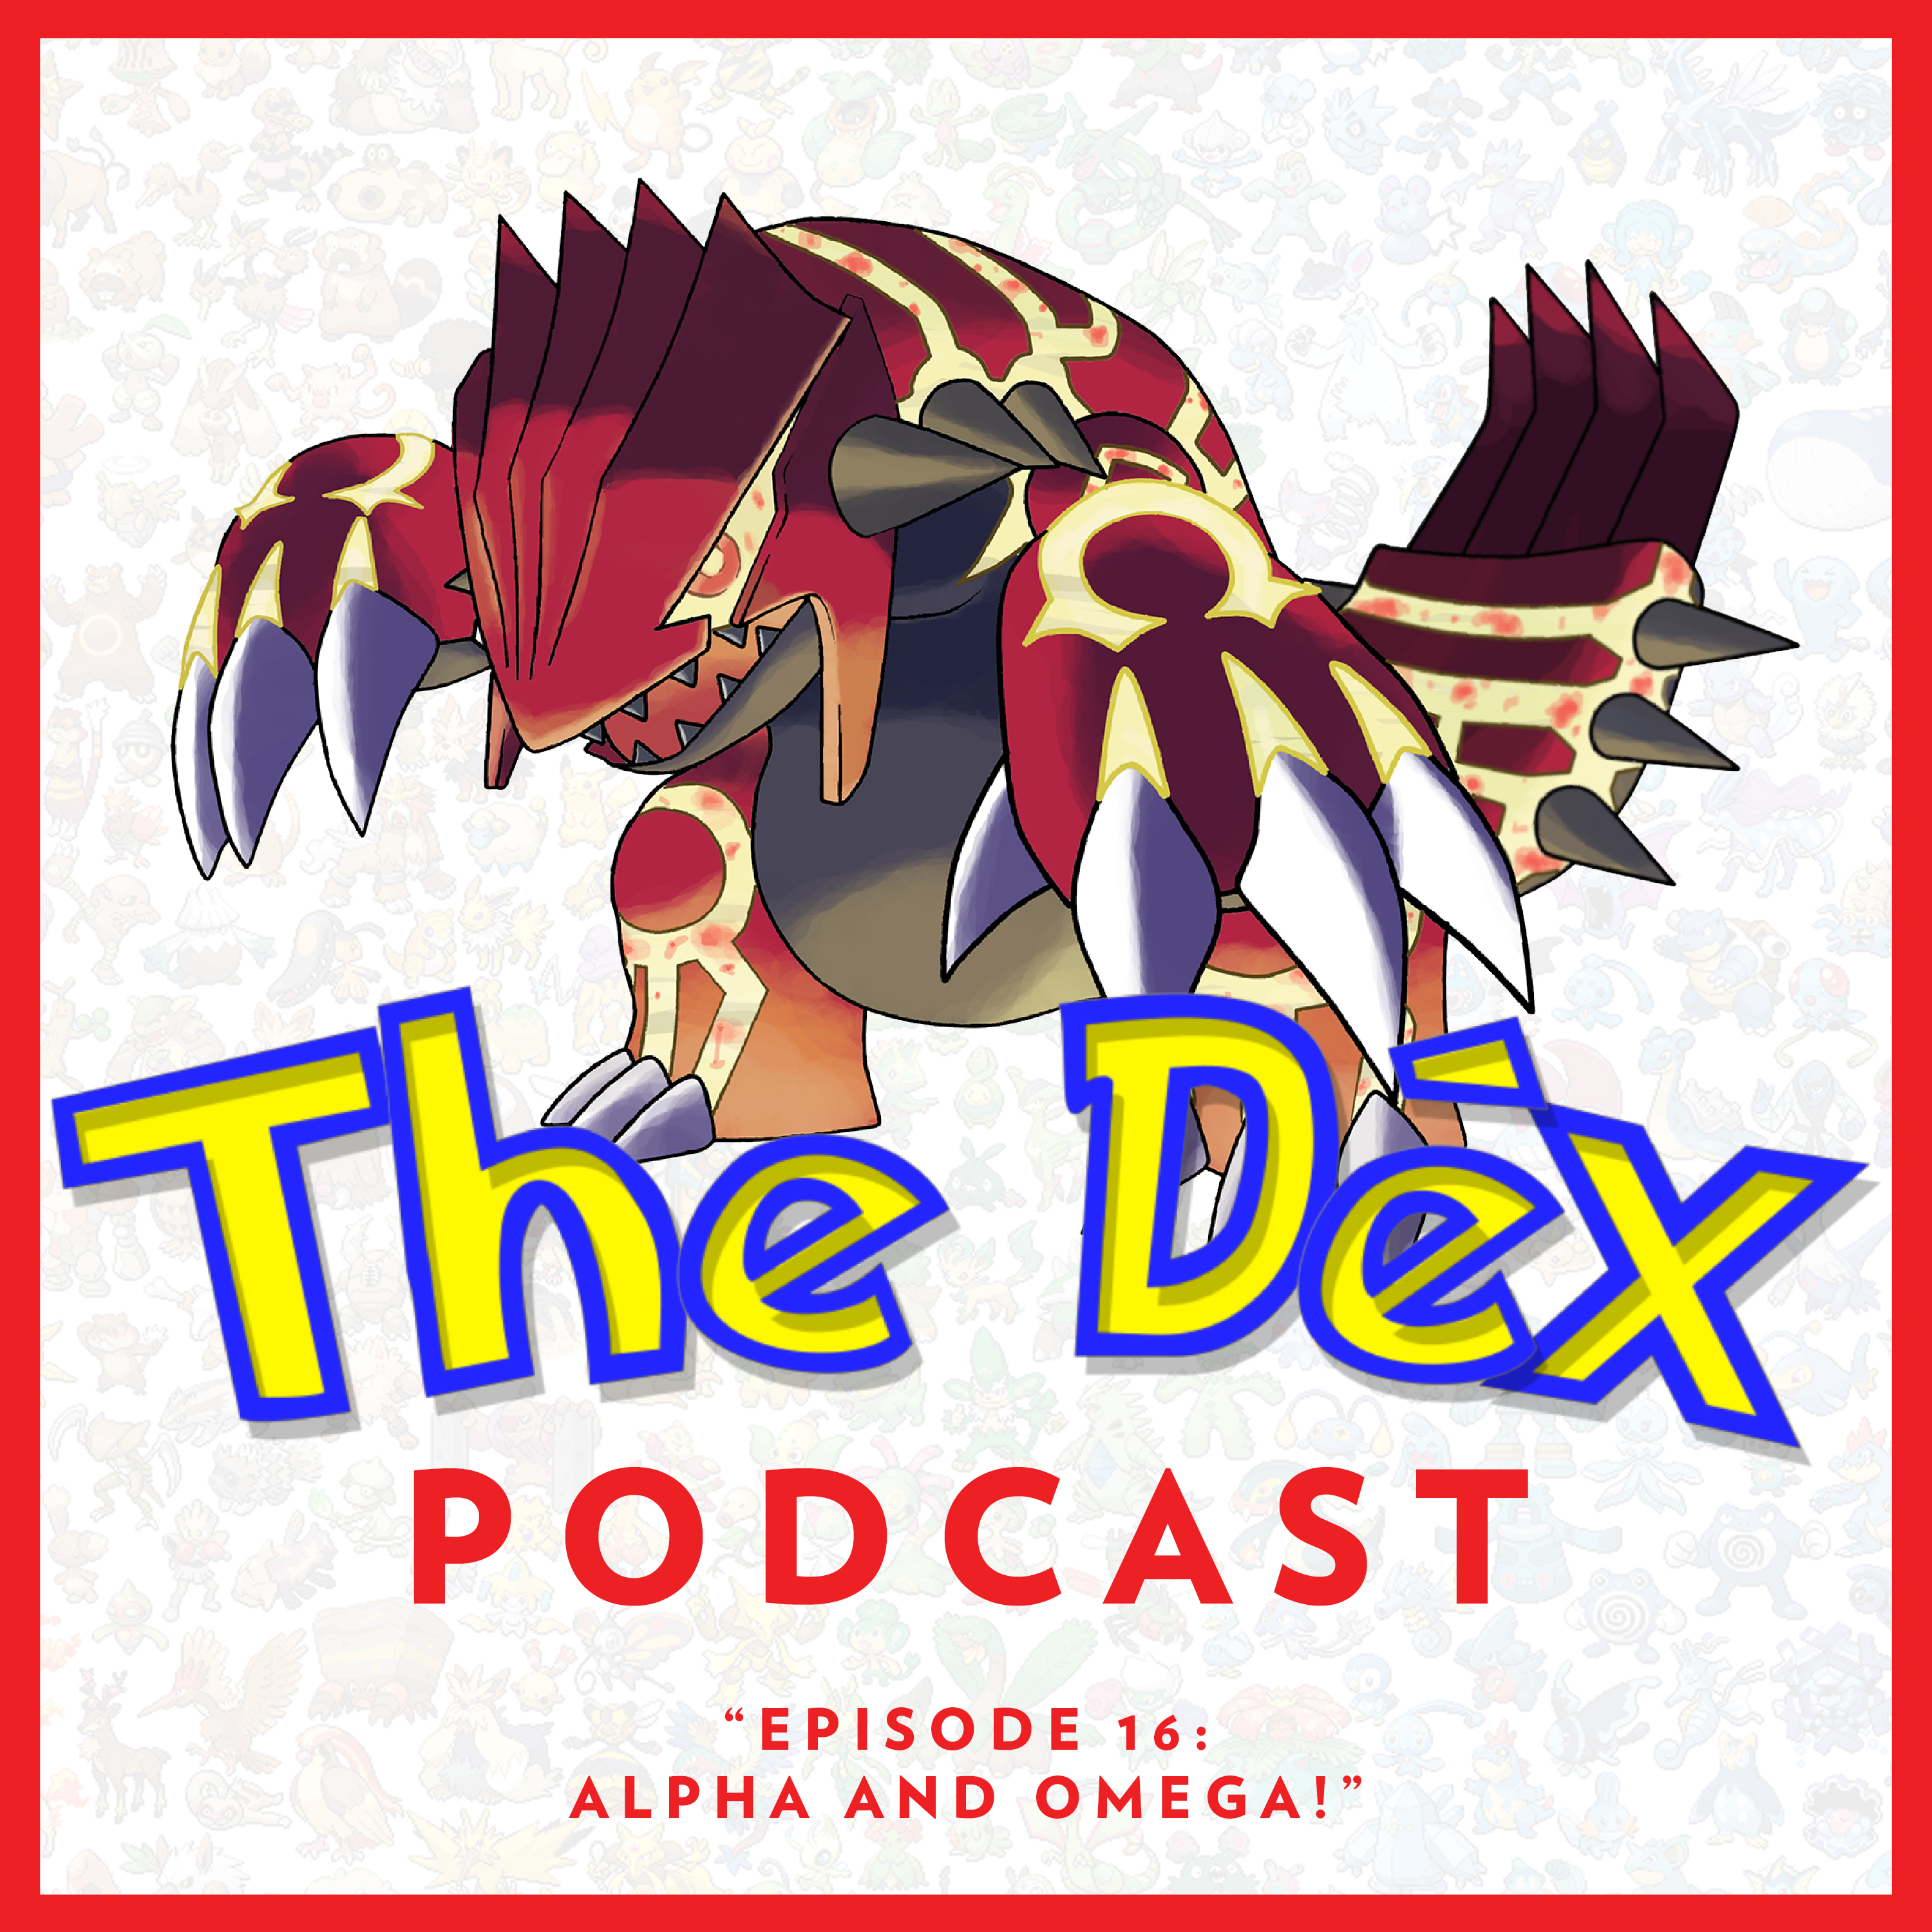 The Dex! Podcast #16: Alpha and Omega!